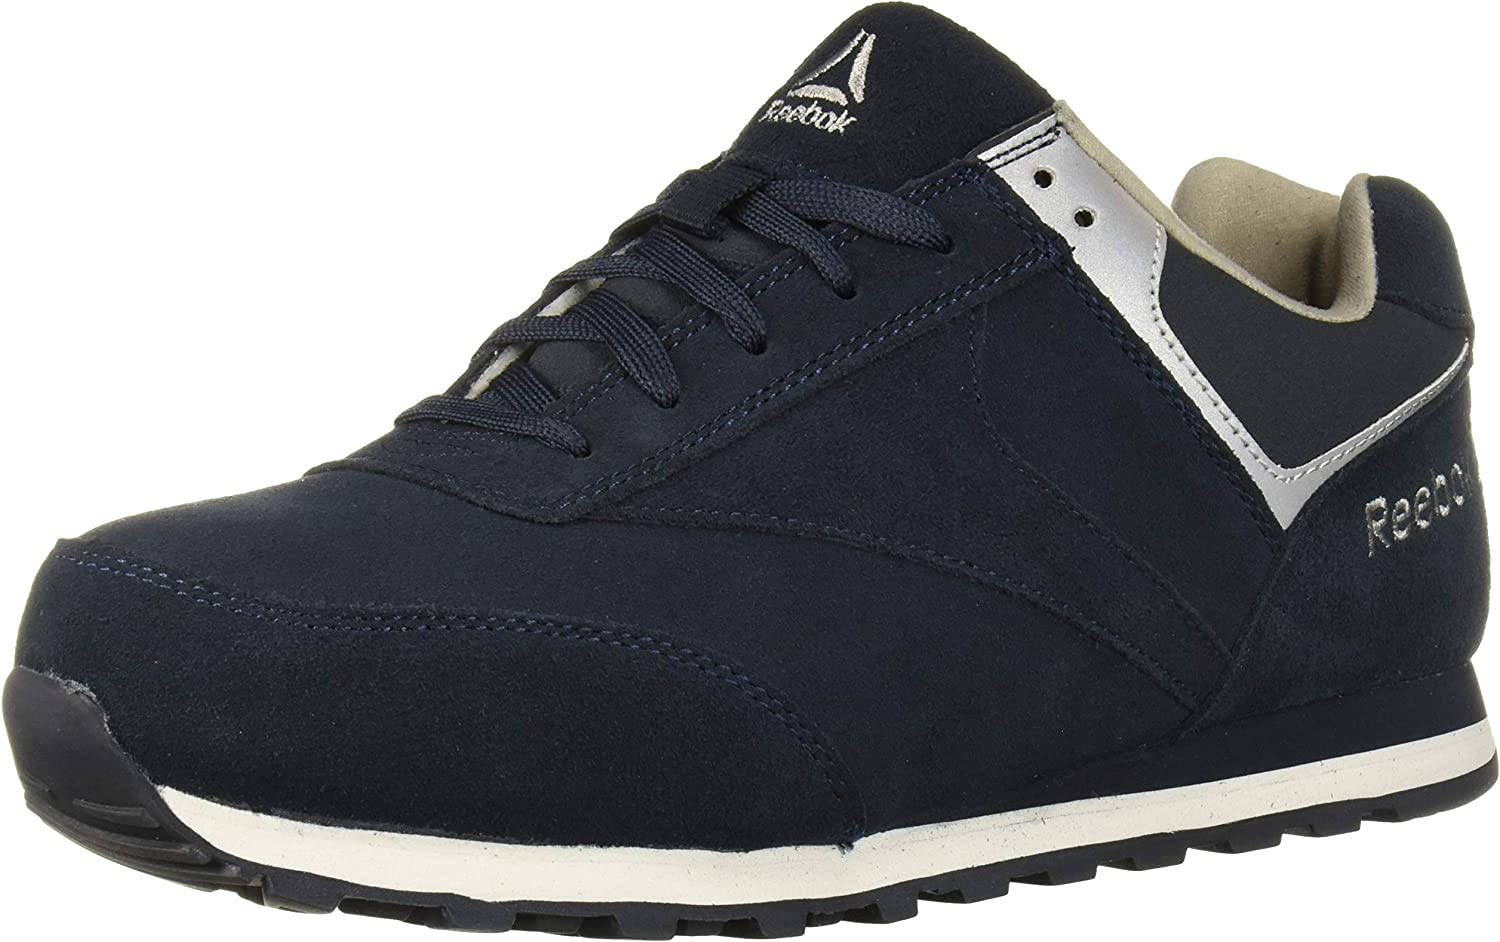 Reebok Work Men's Leelap RB1975 EH Athletic Safety shoes